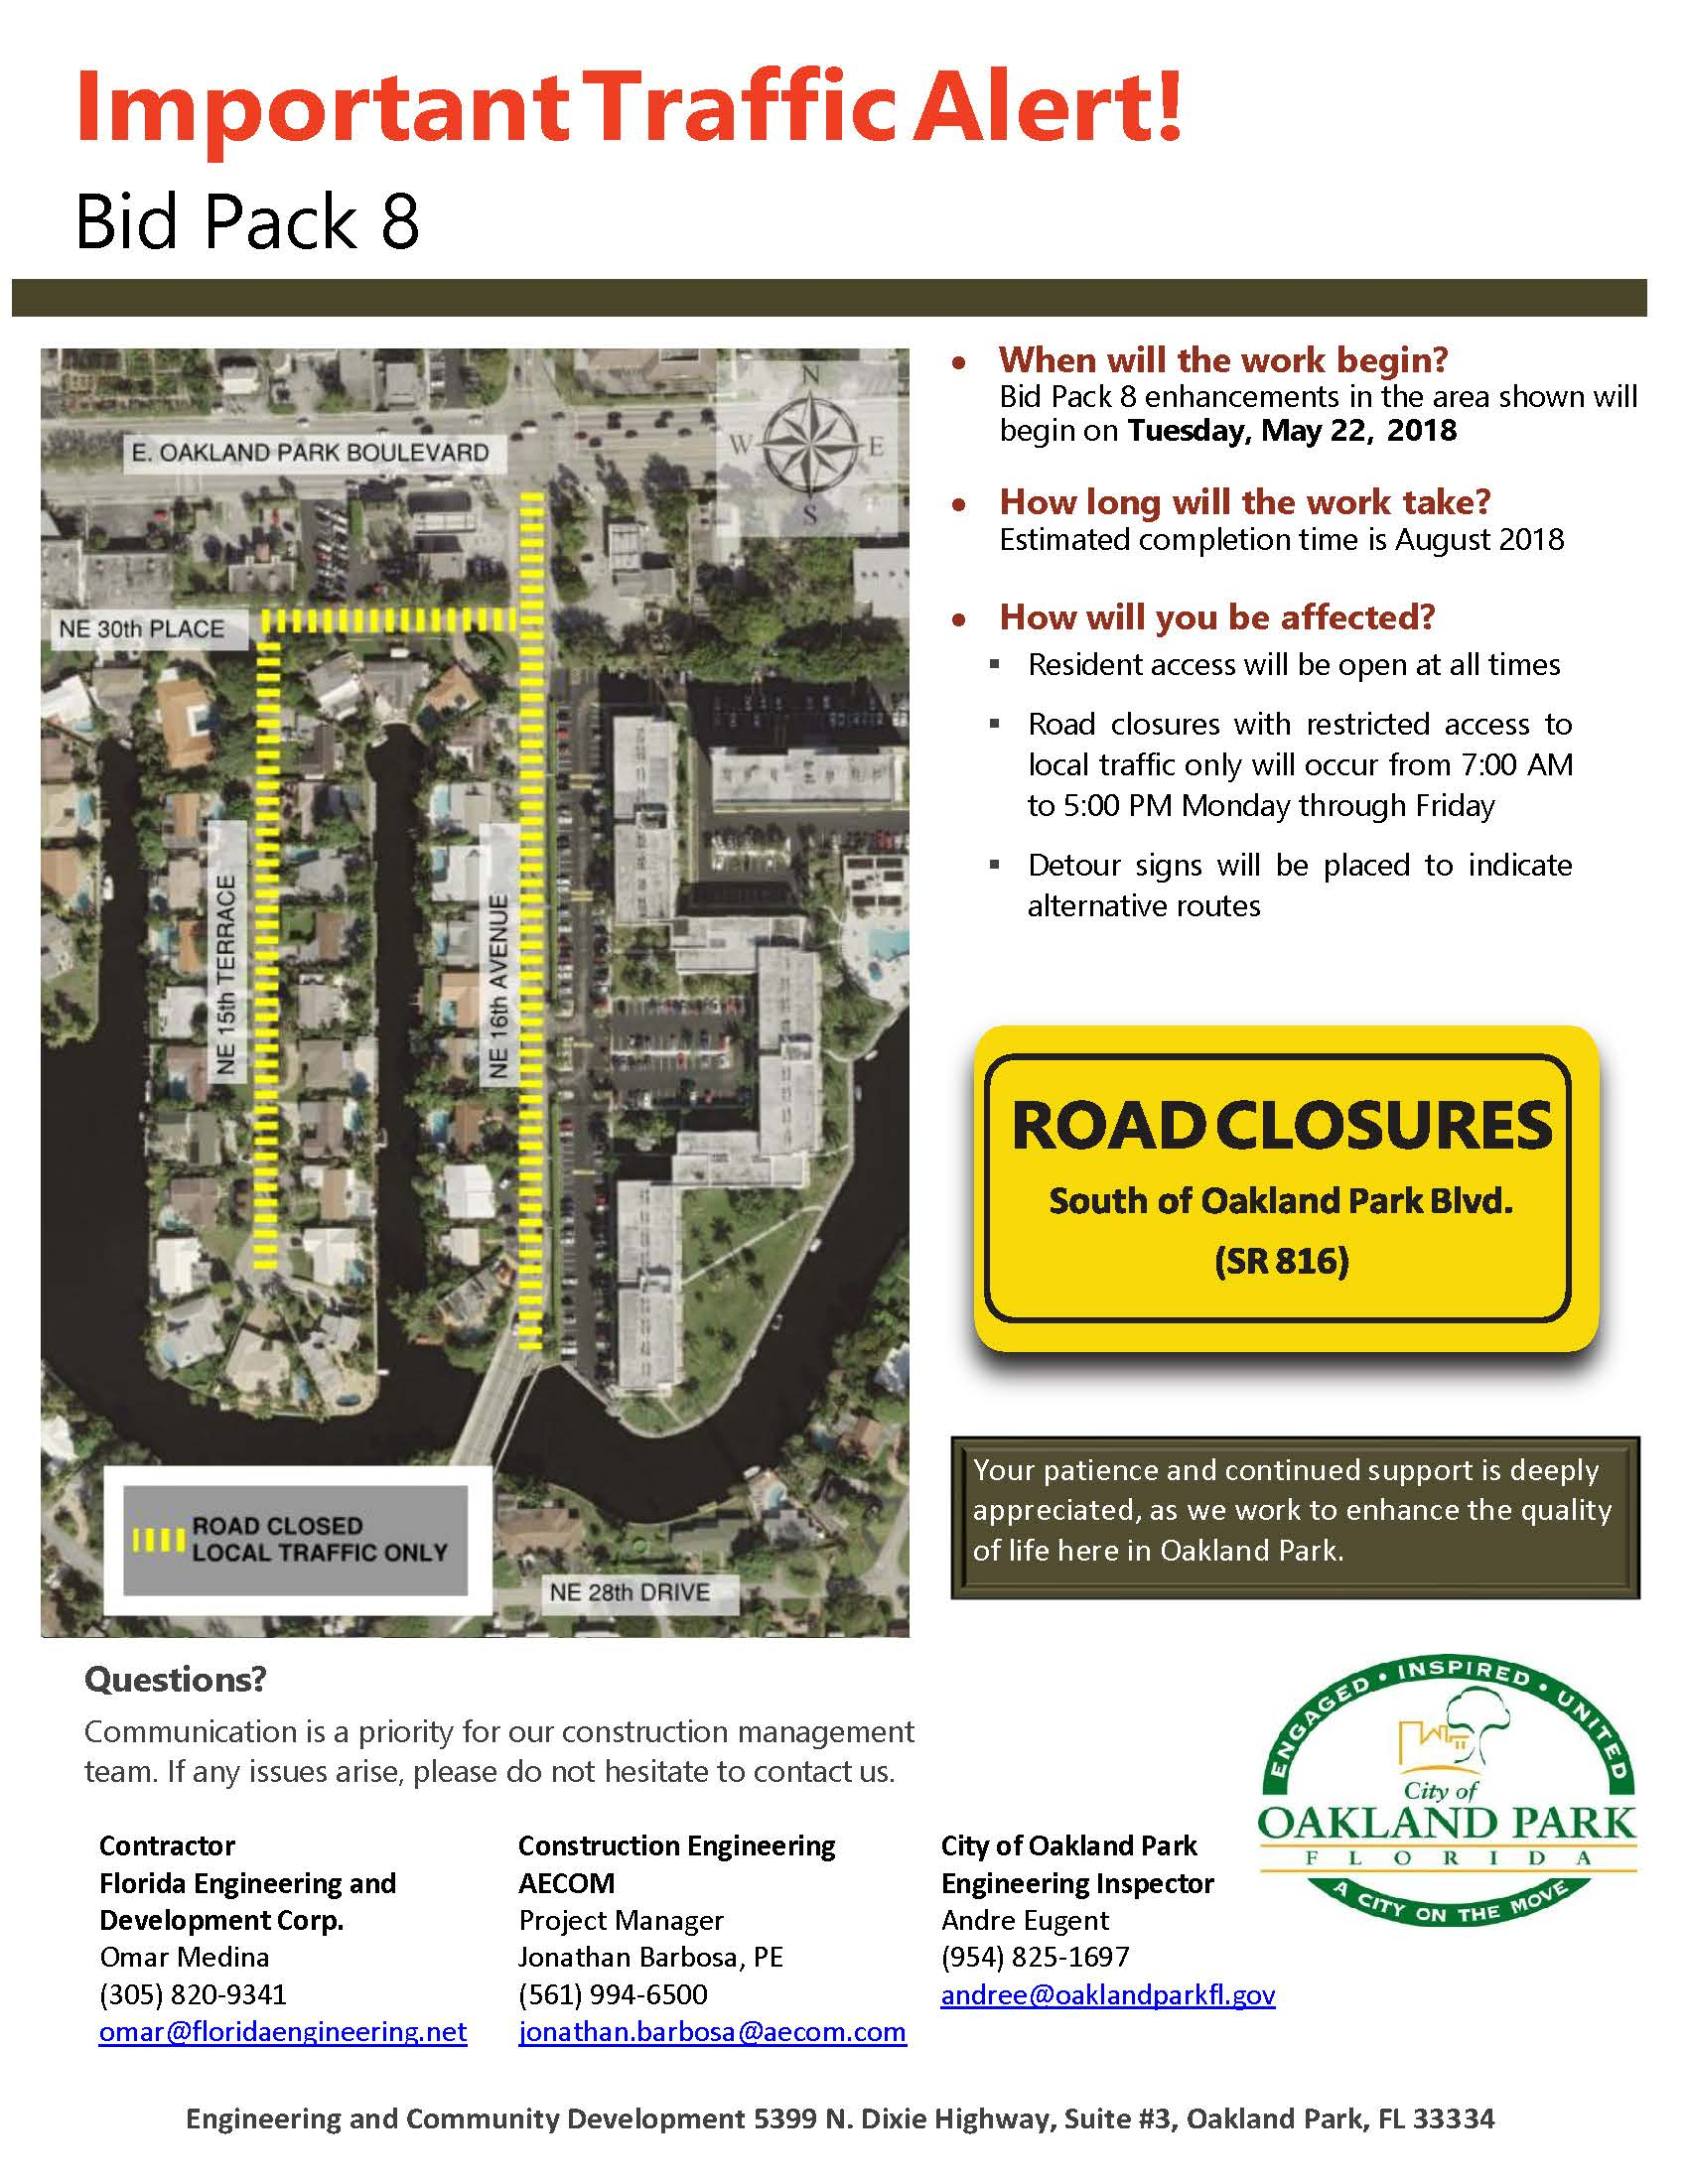 Road Closure Notice 5-22-18, 16th Avenue